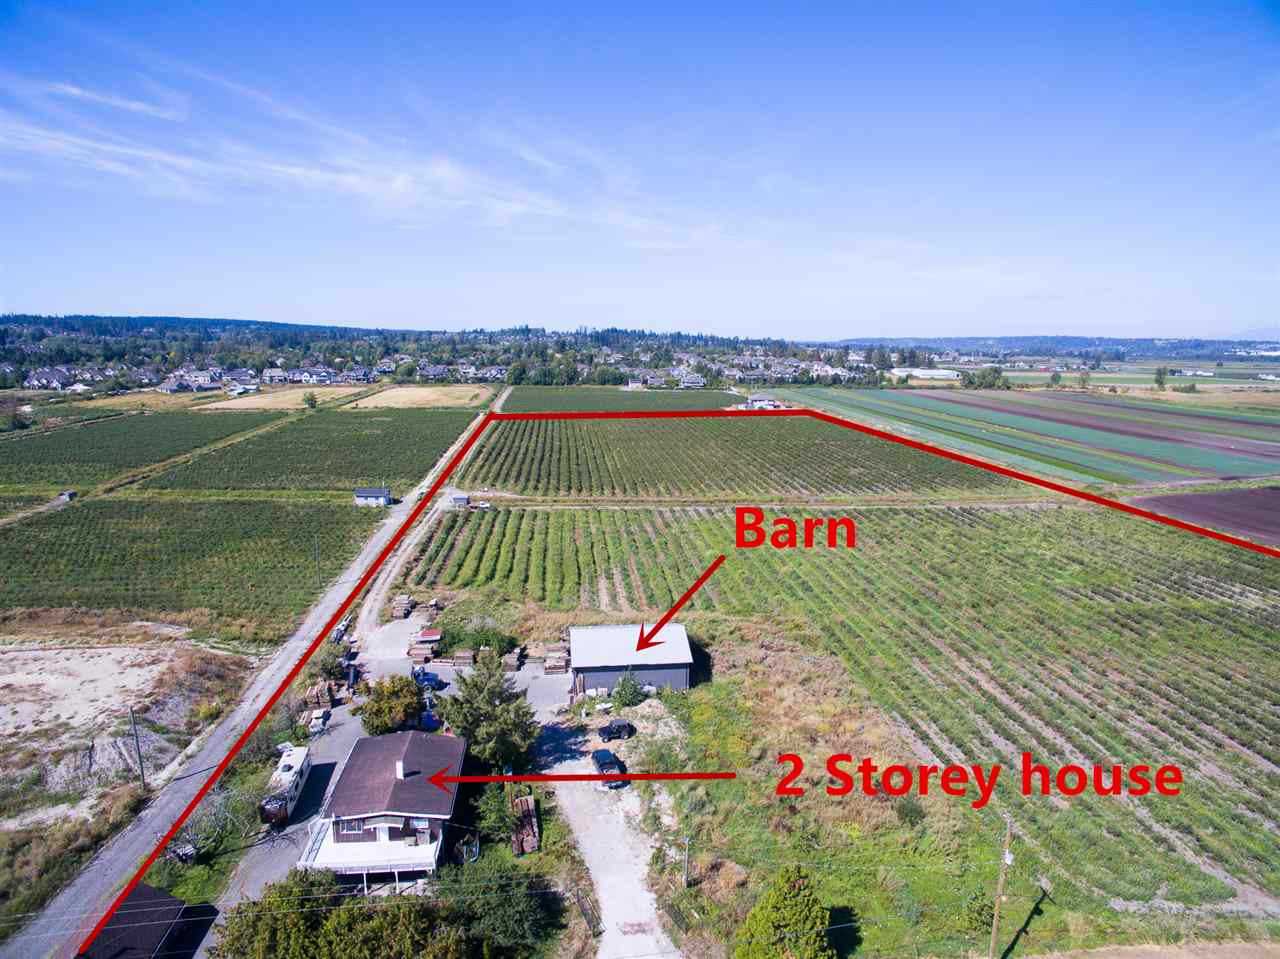 19 Acres Blueberry farm location behind Morgan Creek developments area in South Surrey, easy access to Highway #10 (56 Ave), Highway #99 and Highway #15 (176 Street). Minutes away from US - Canada Border crossing, White Rock beach. Perfect location to build your dream home as subject property is close to all amenities. Fully production blueberry annually, 2 storey house can be used as residential property or rental income.